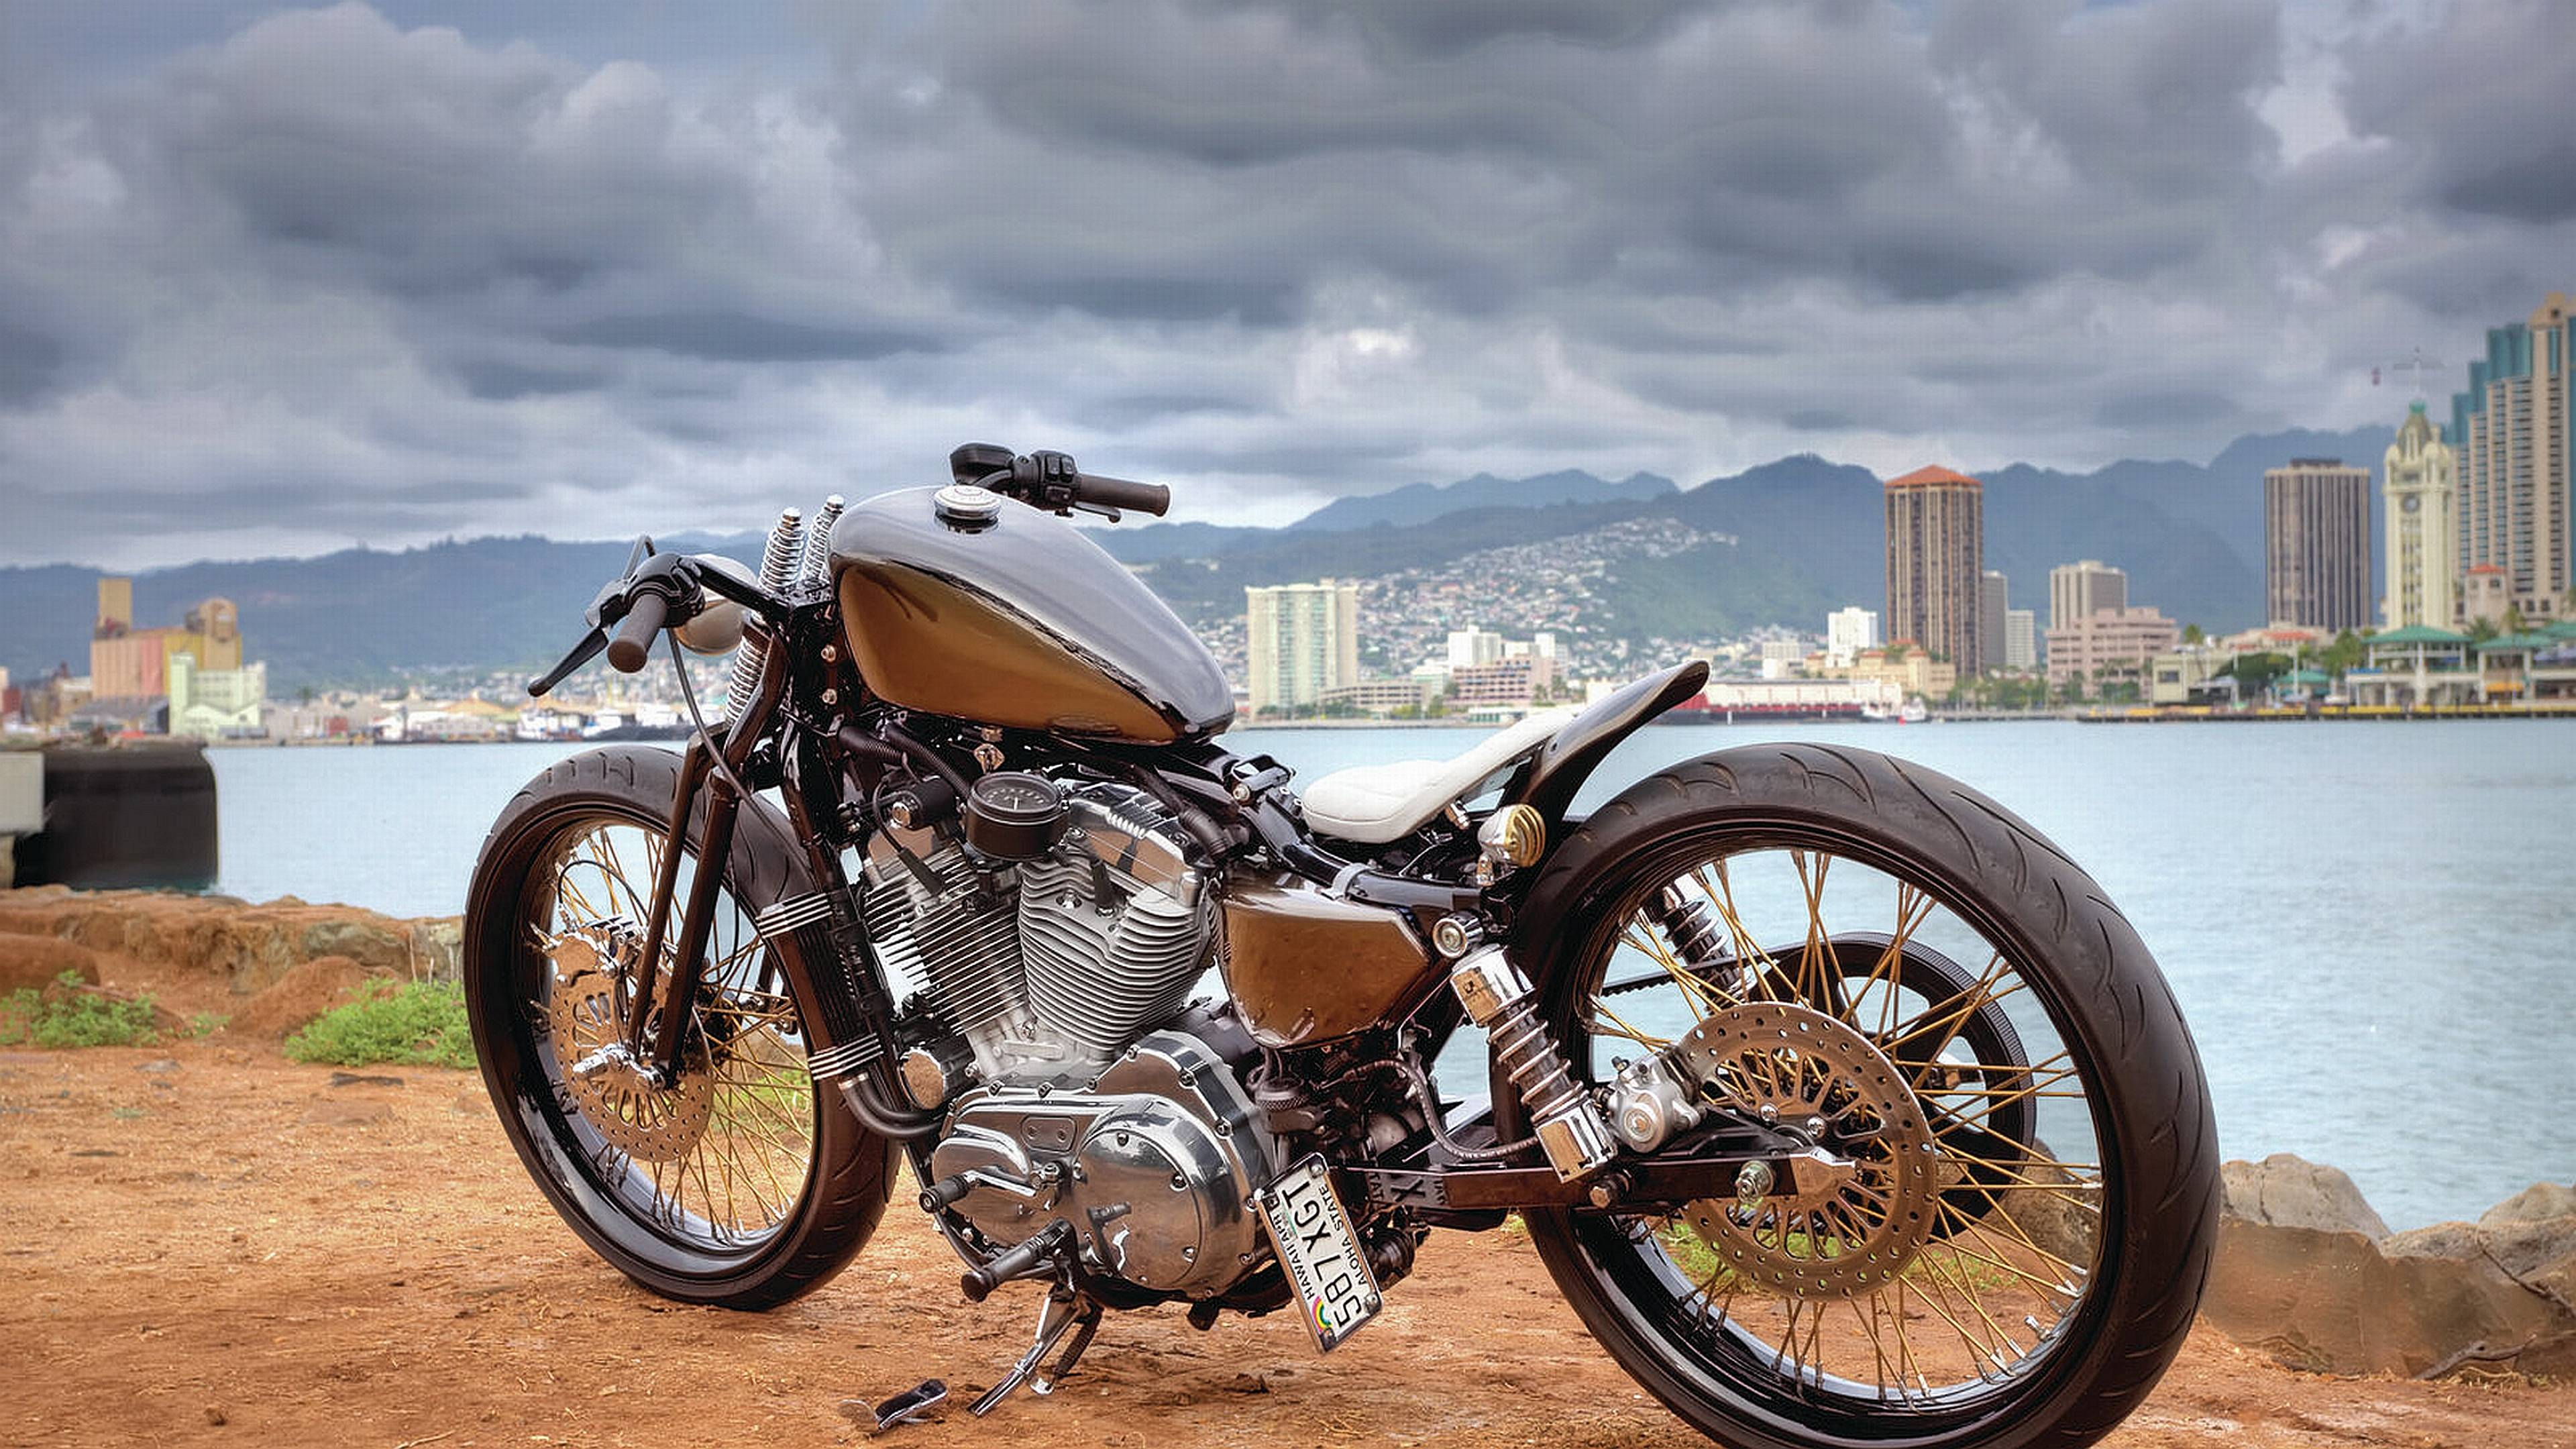 Harley Davidson Backgrounds For Desktop - Wallpaper Cave